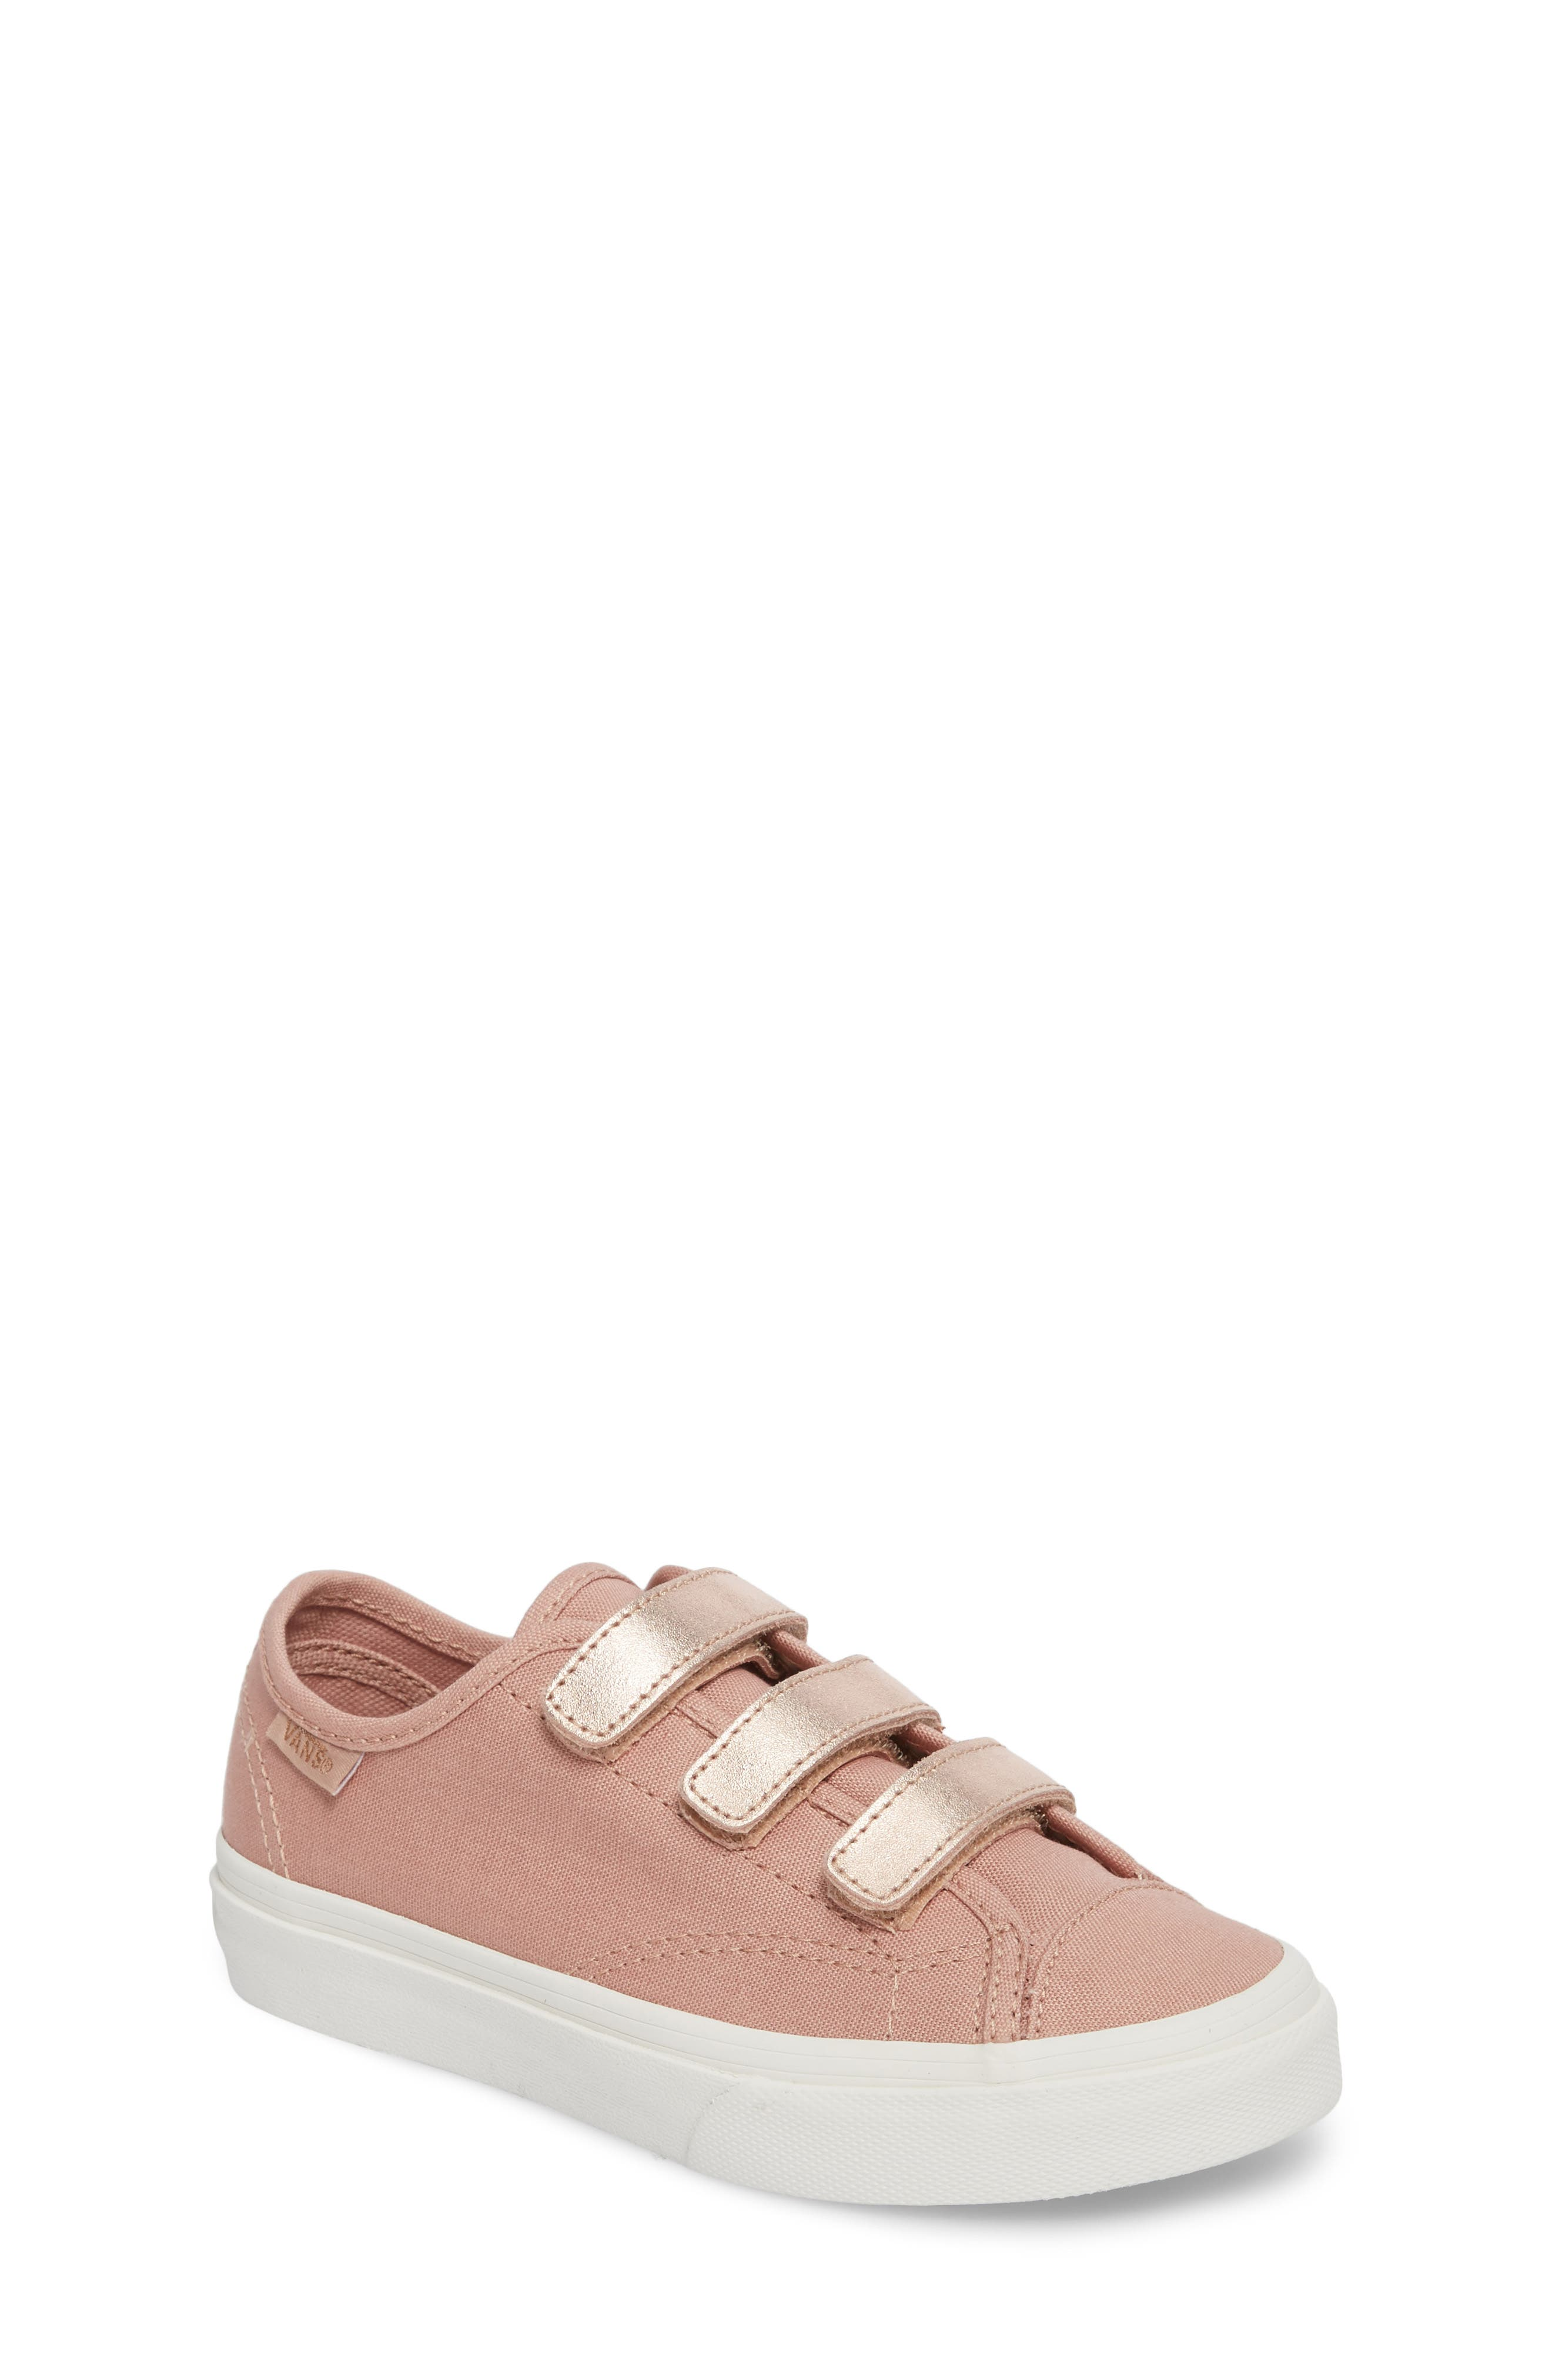 Style 23V Sneaker,                             Main thumbnail 1, color,                             Two-Tone Rose Gold Metallic